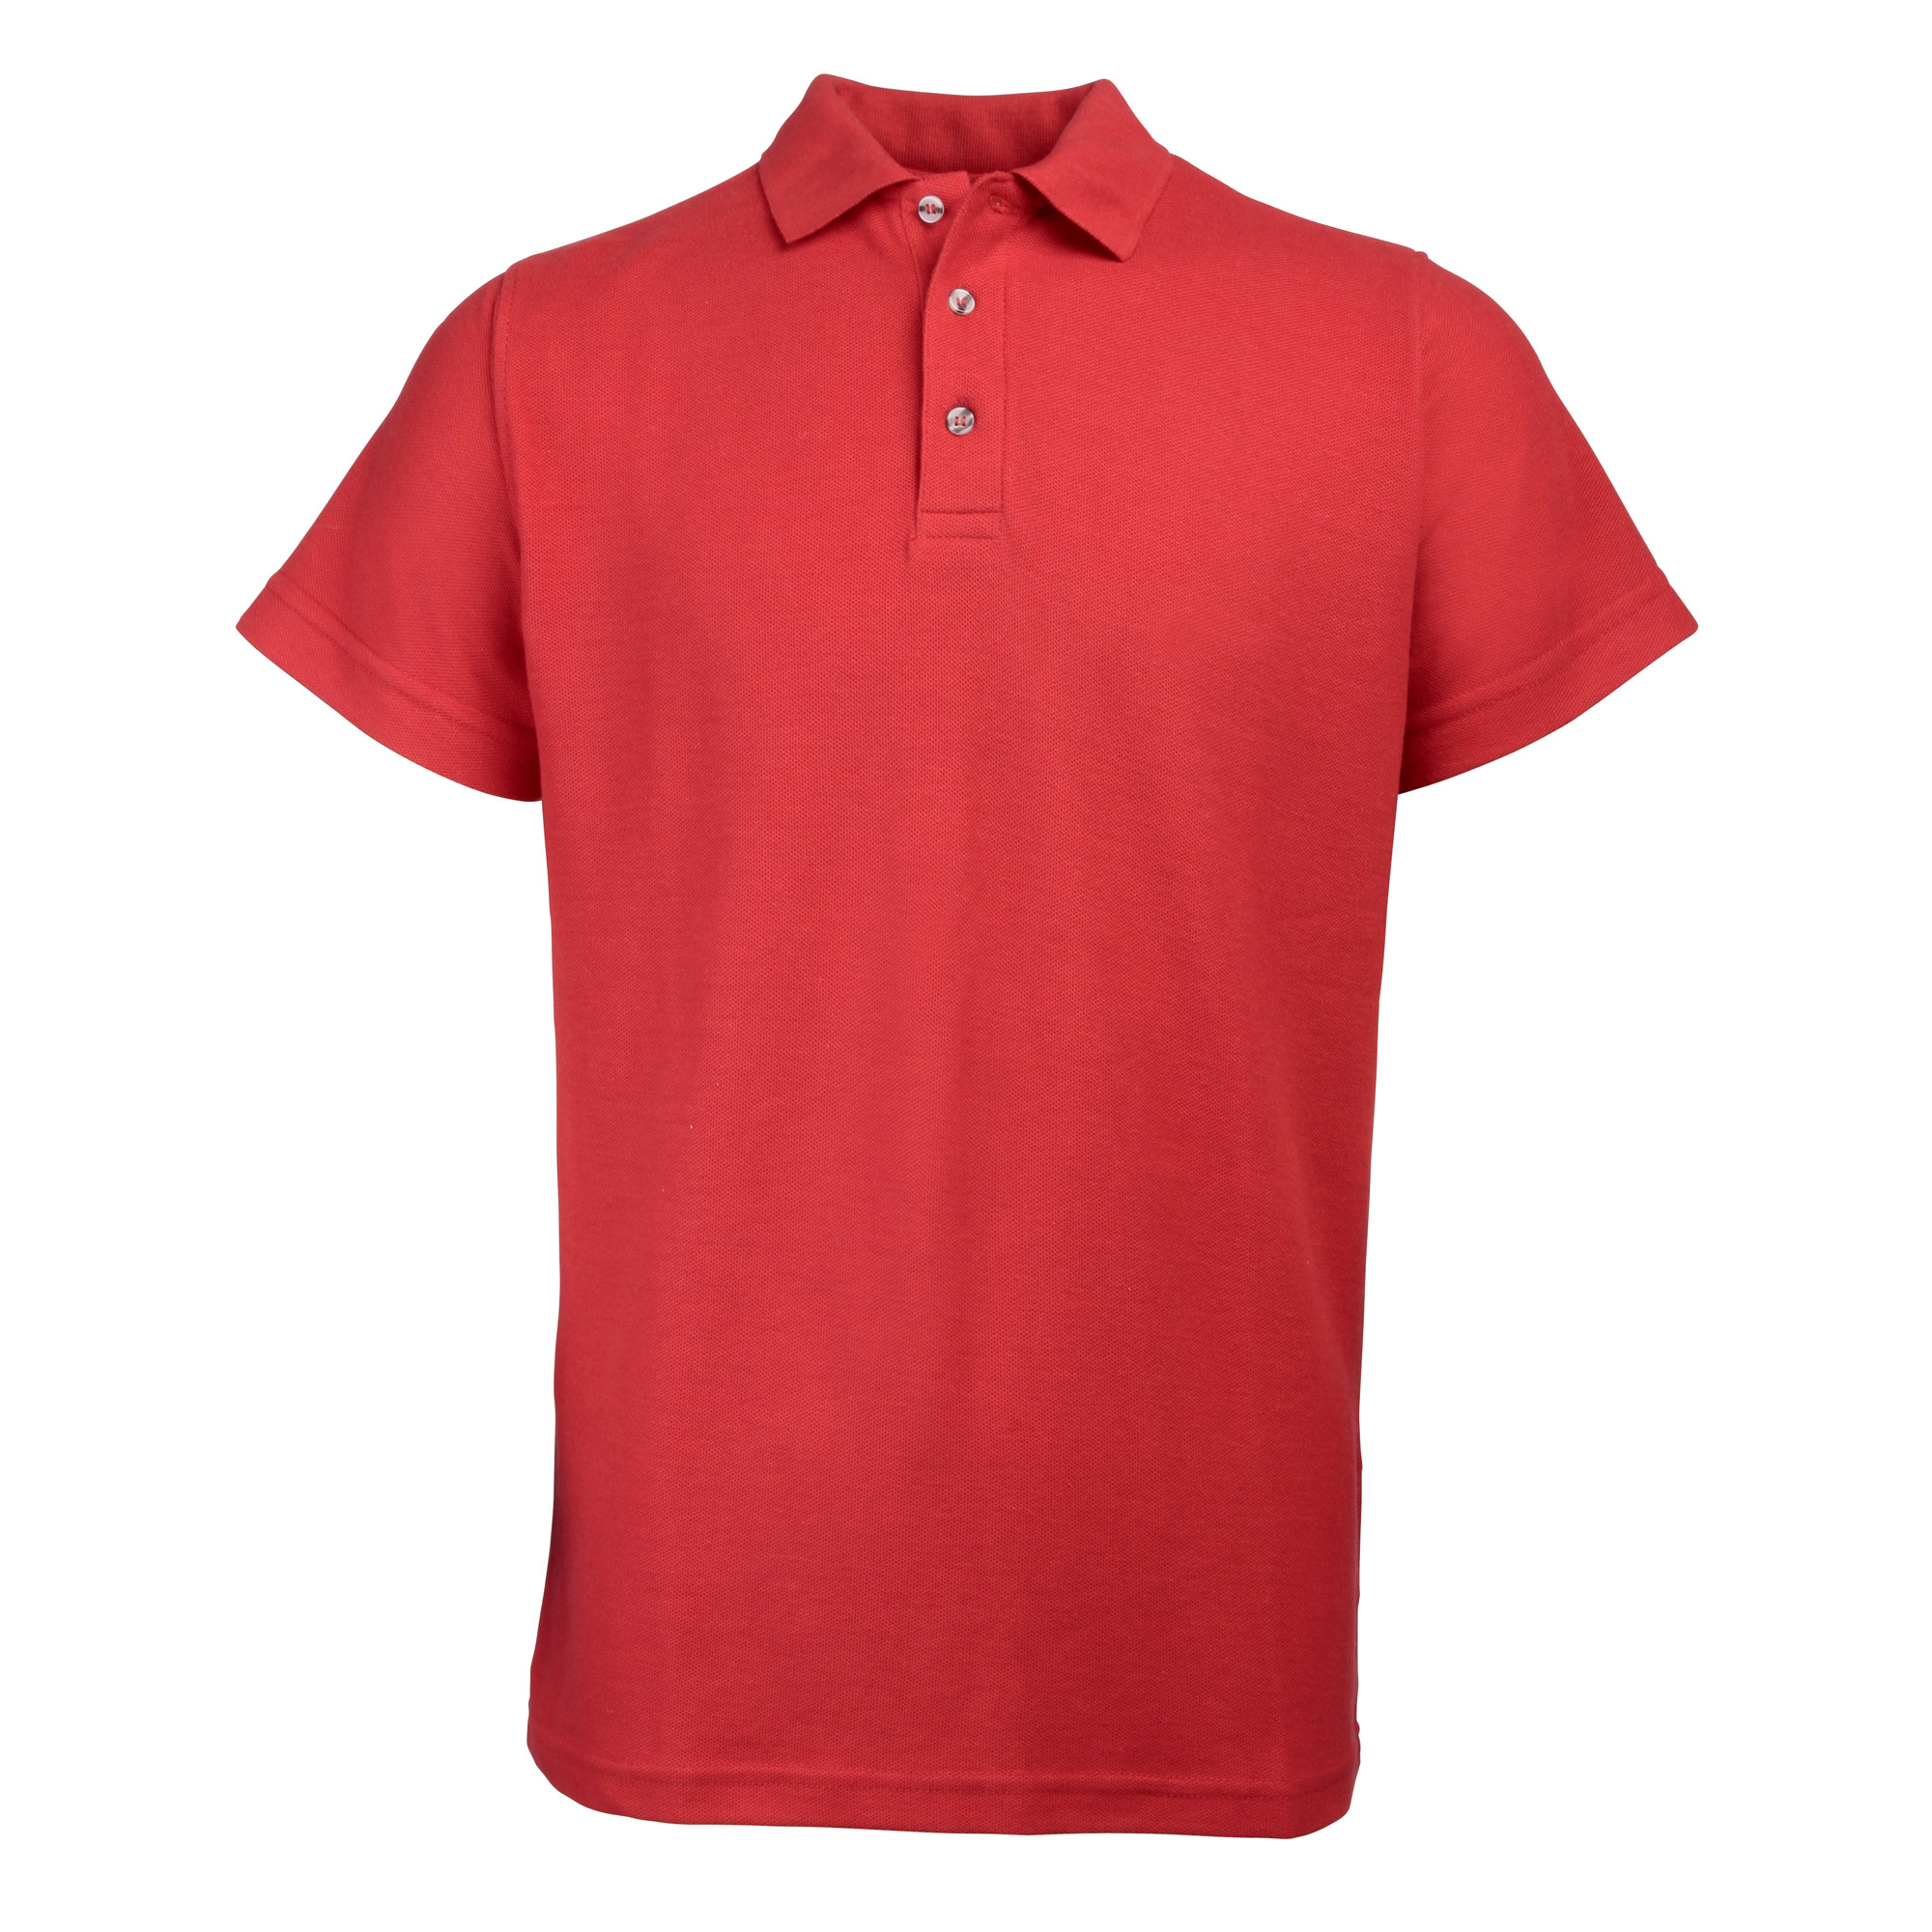 Rty workwear mens pique knit heavyweight polo shirt s 10xl for Knitted polo shirt mens